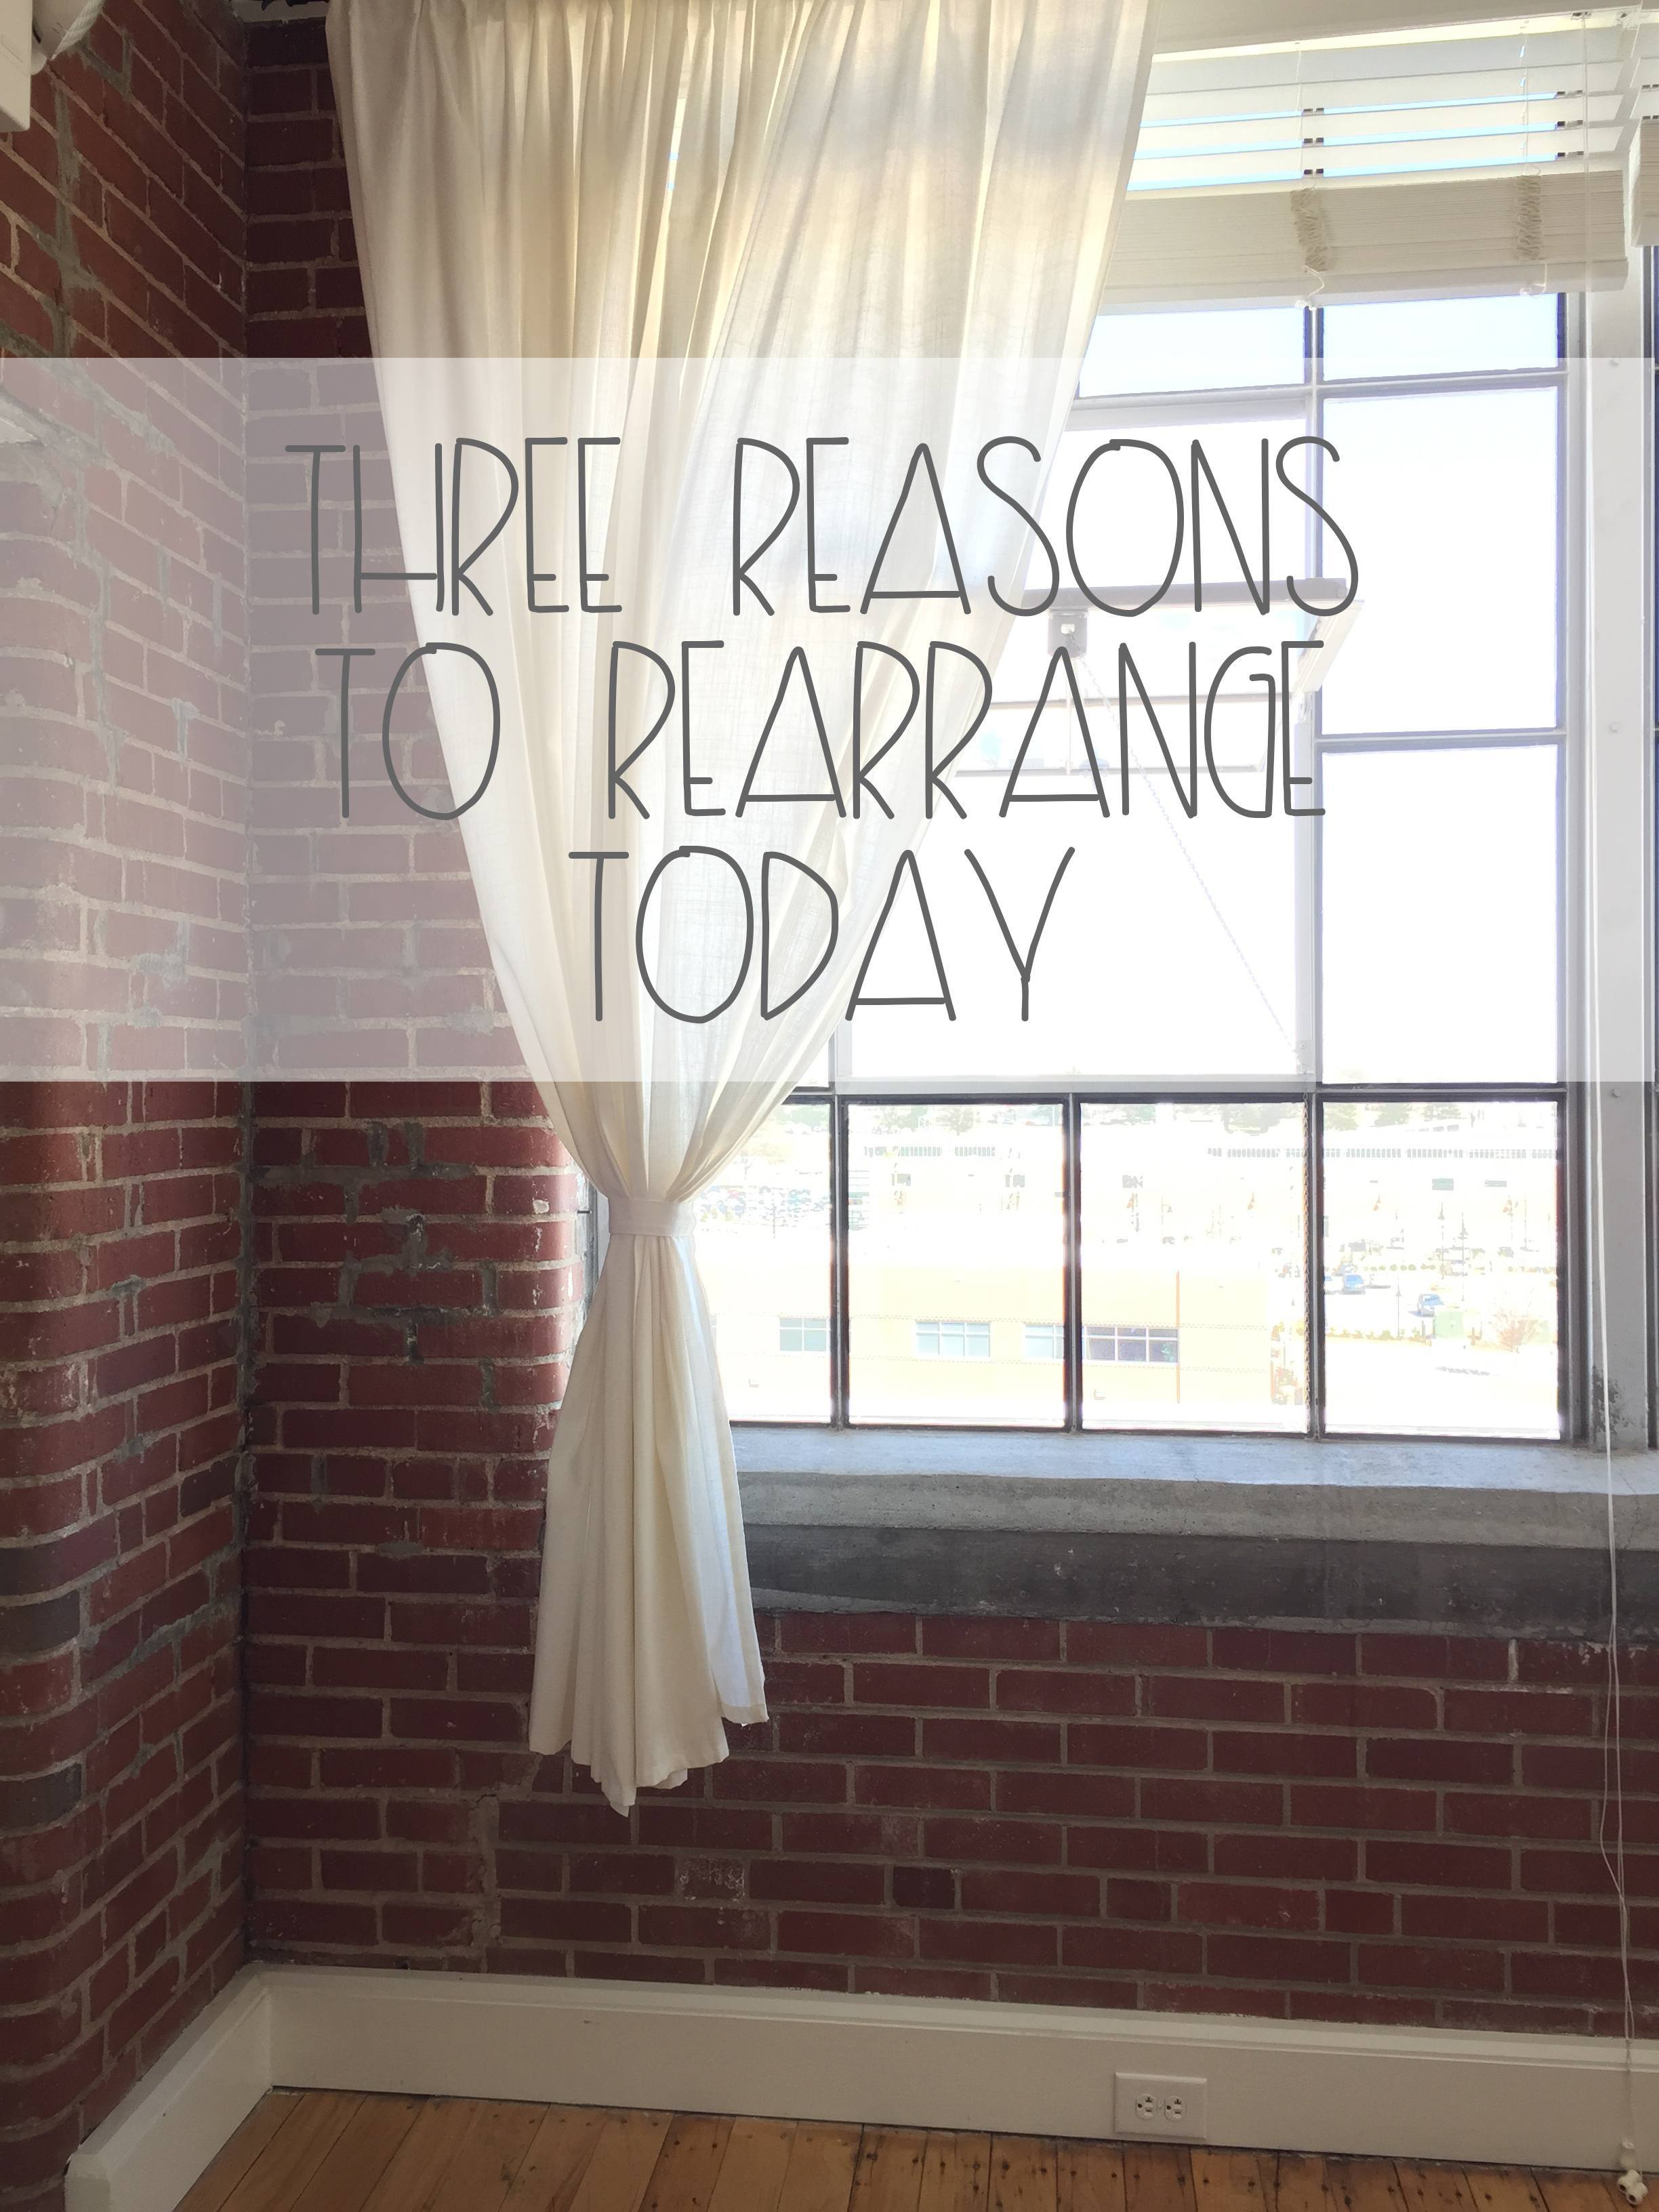 Three Reasons For Rearranging Today | Red Autumn Co.